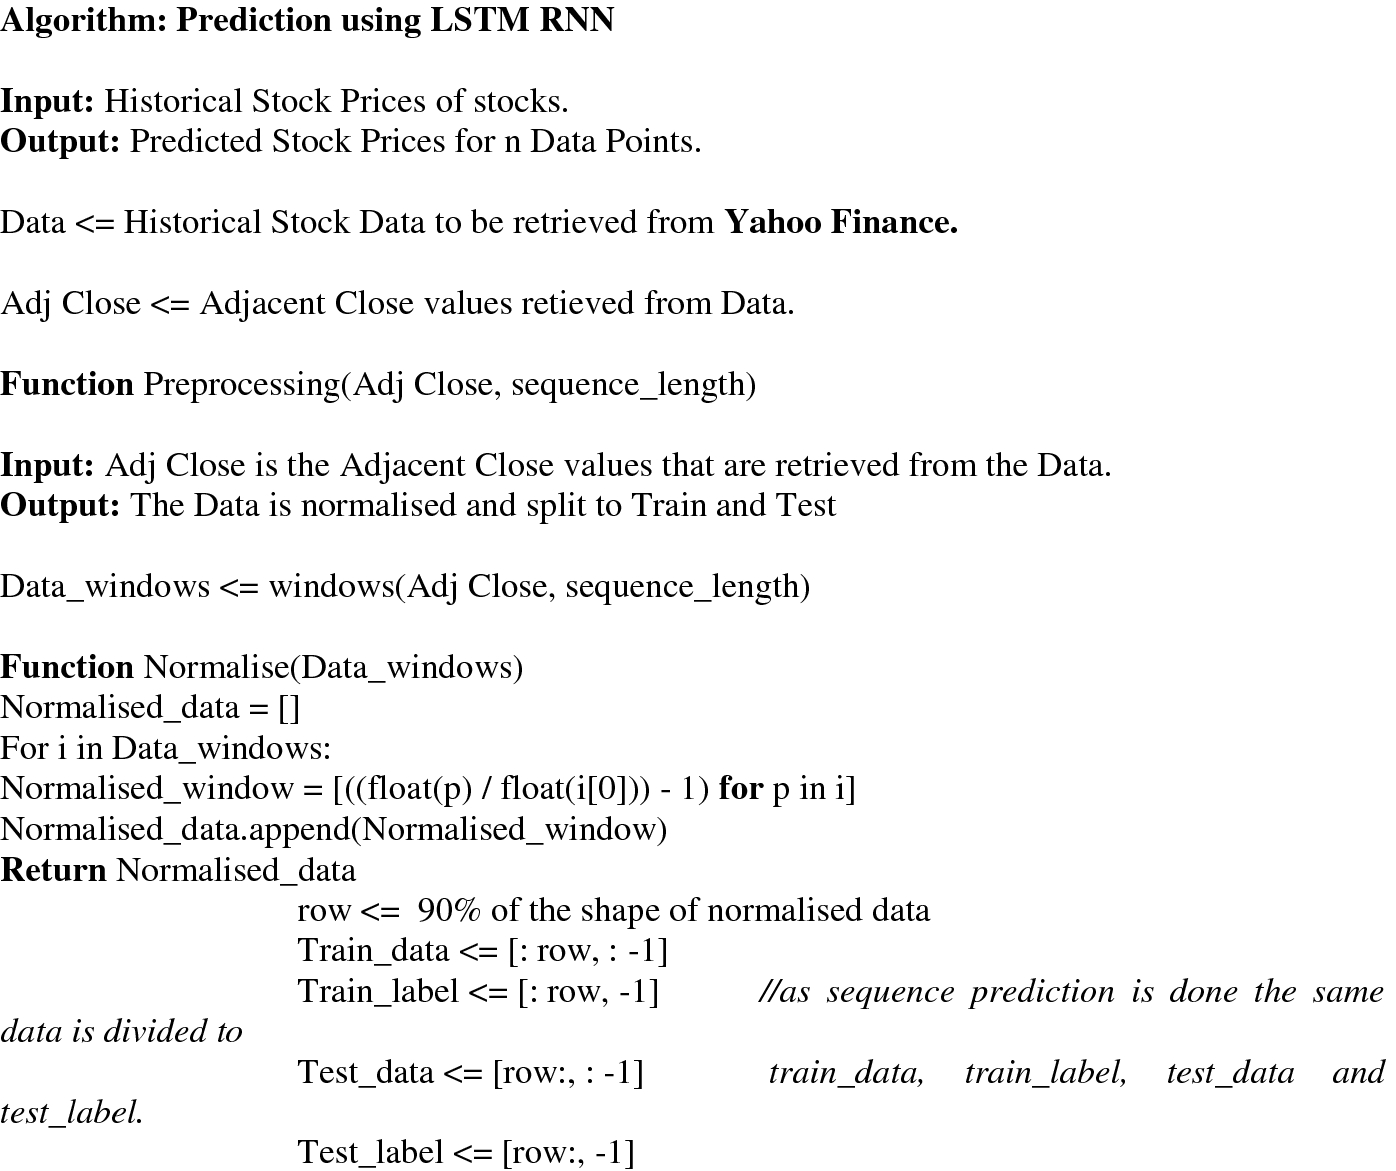 Stock Market Price Prediction Using LSTM RNN | SpringerLink